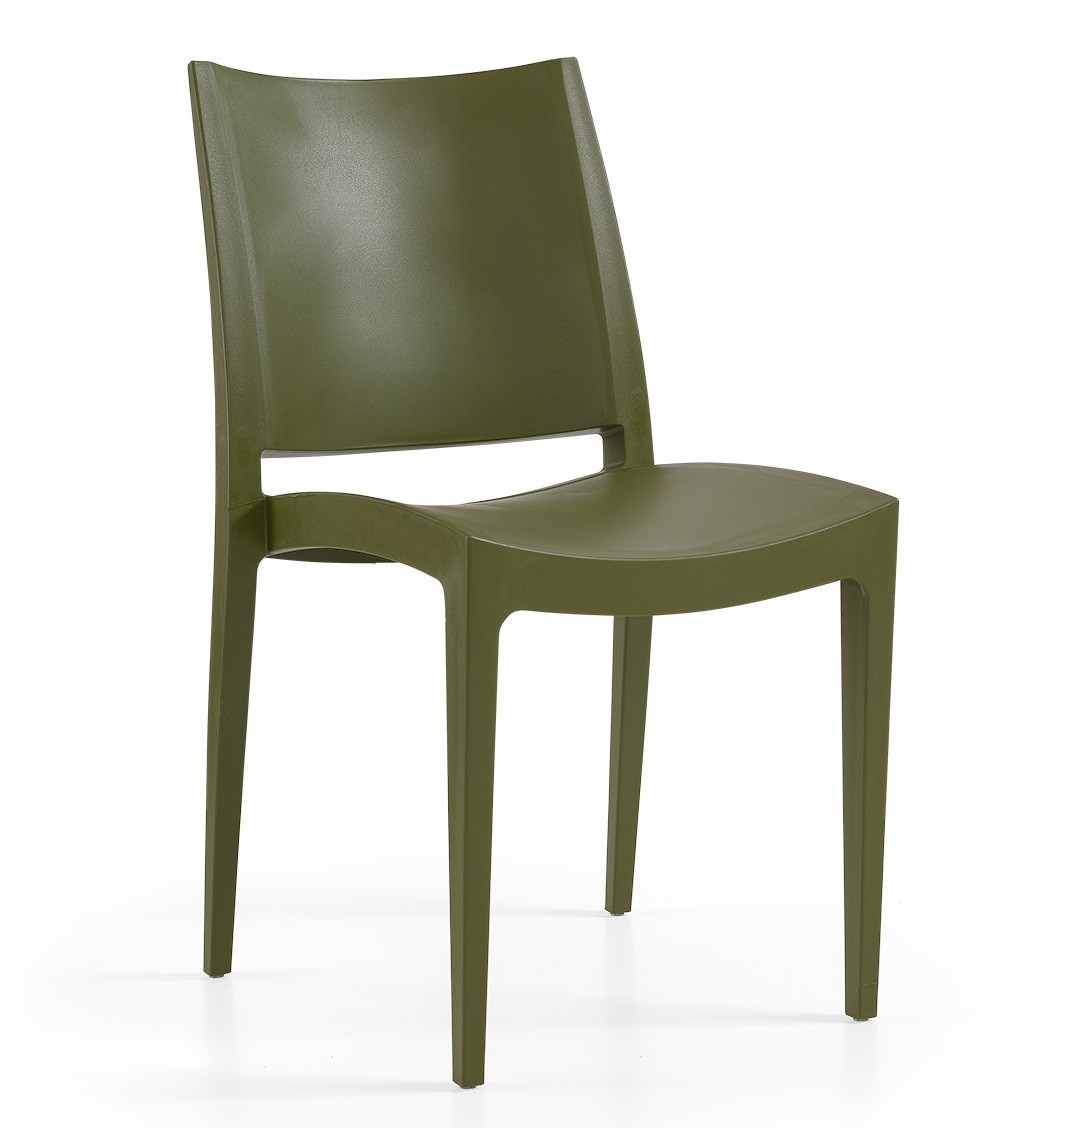 Chair BEYBE, Stackable, Polypropylene Olive Green